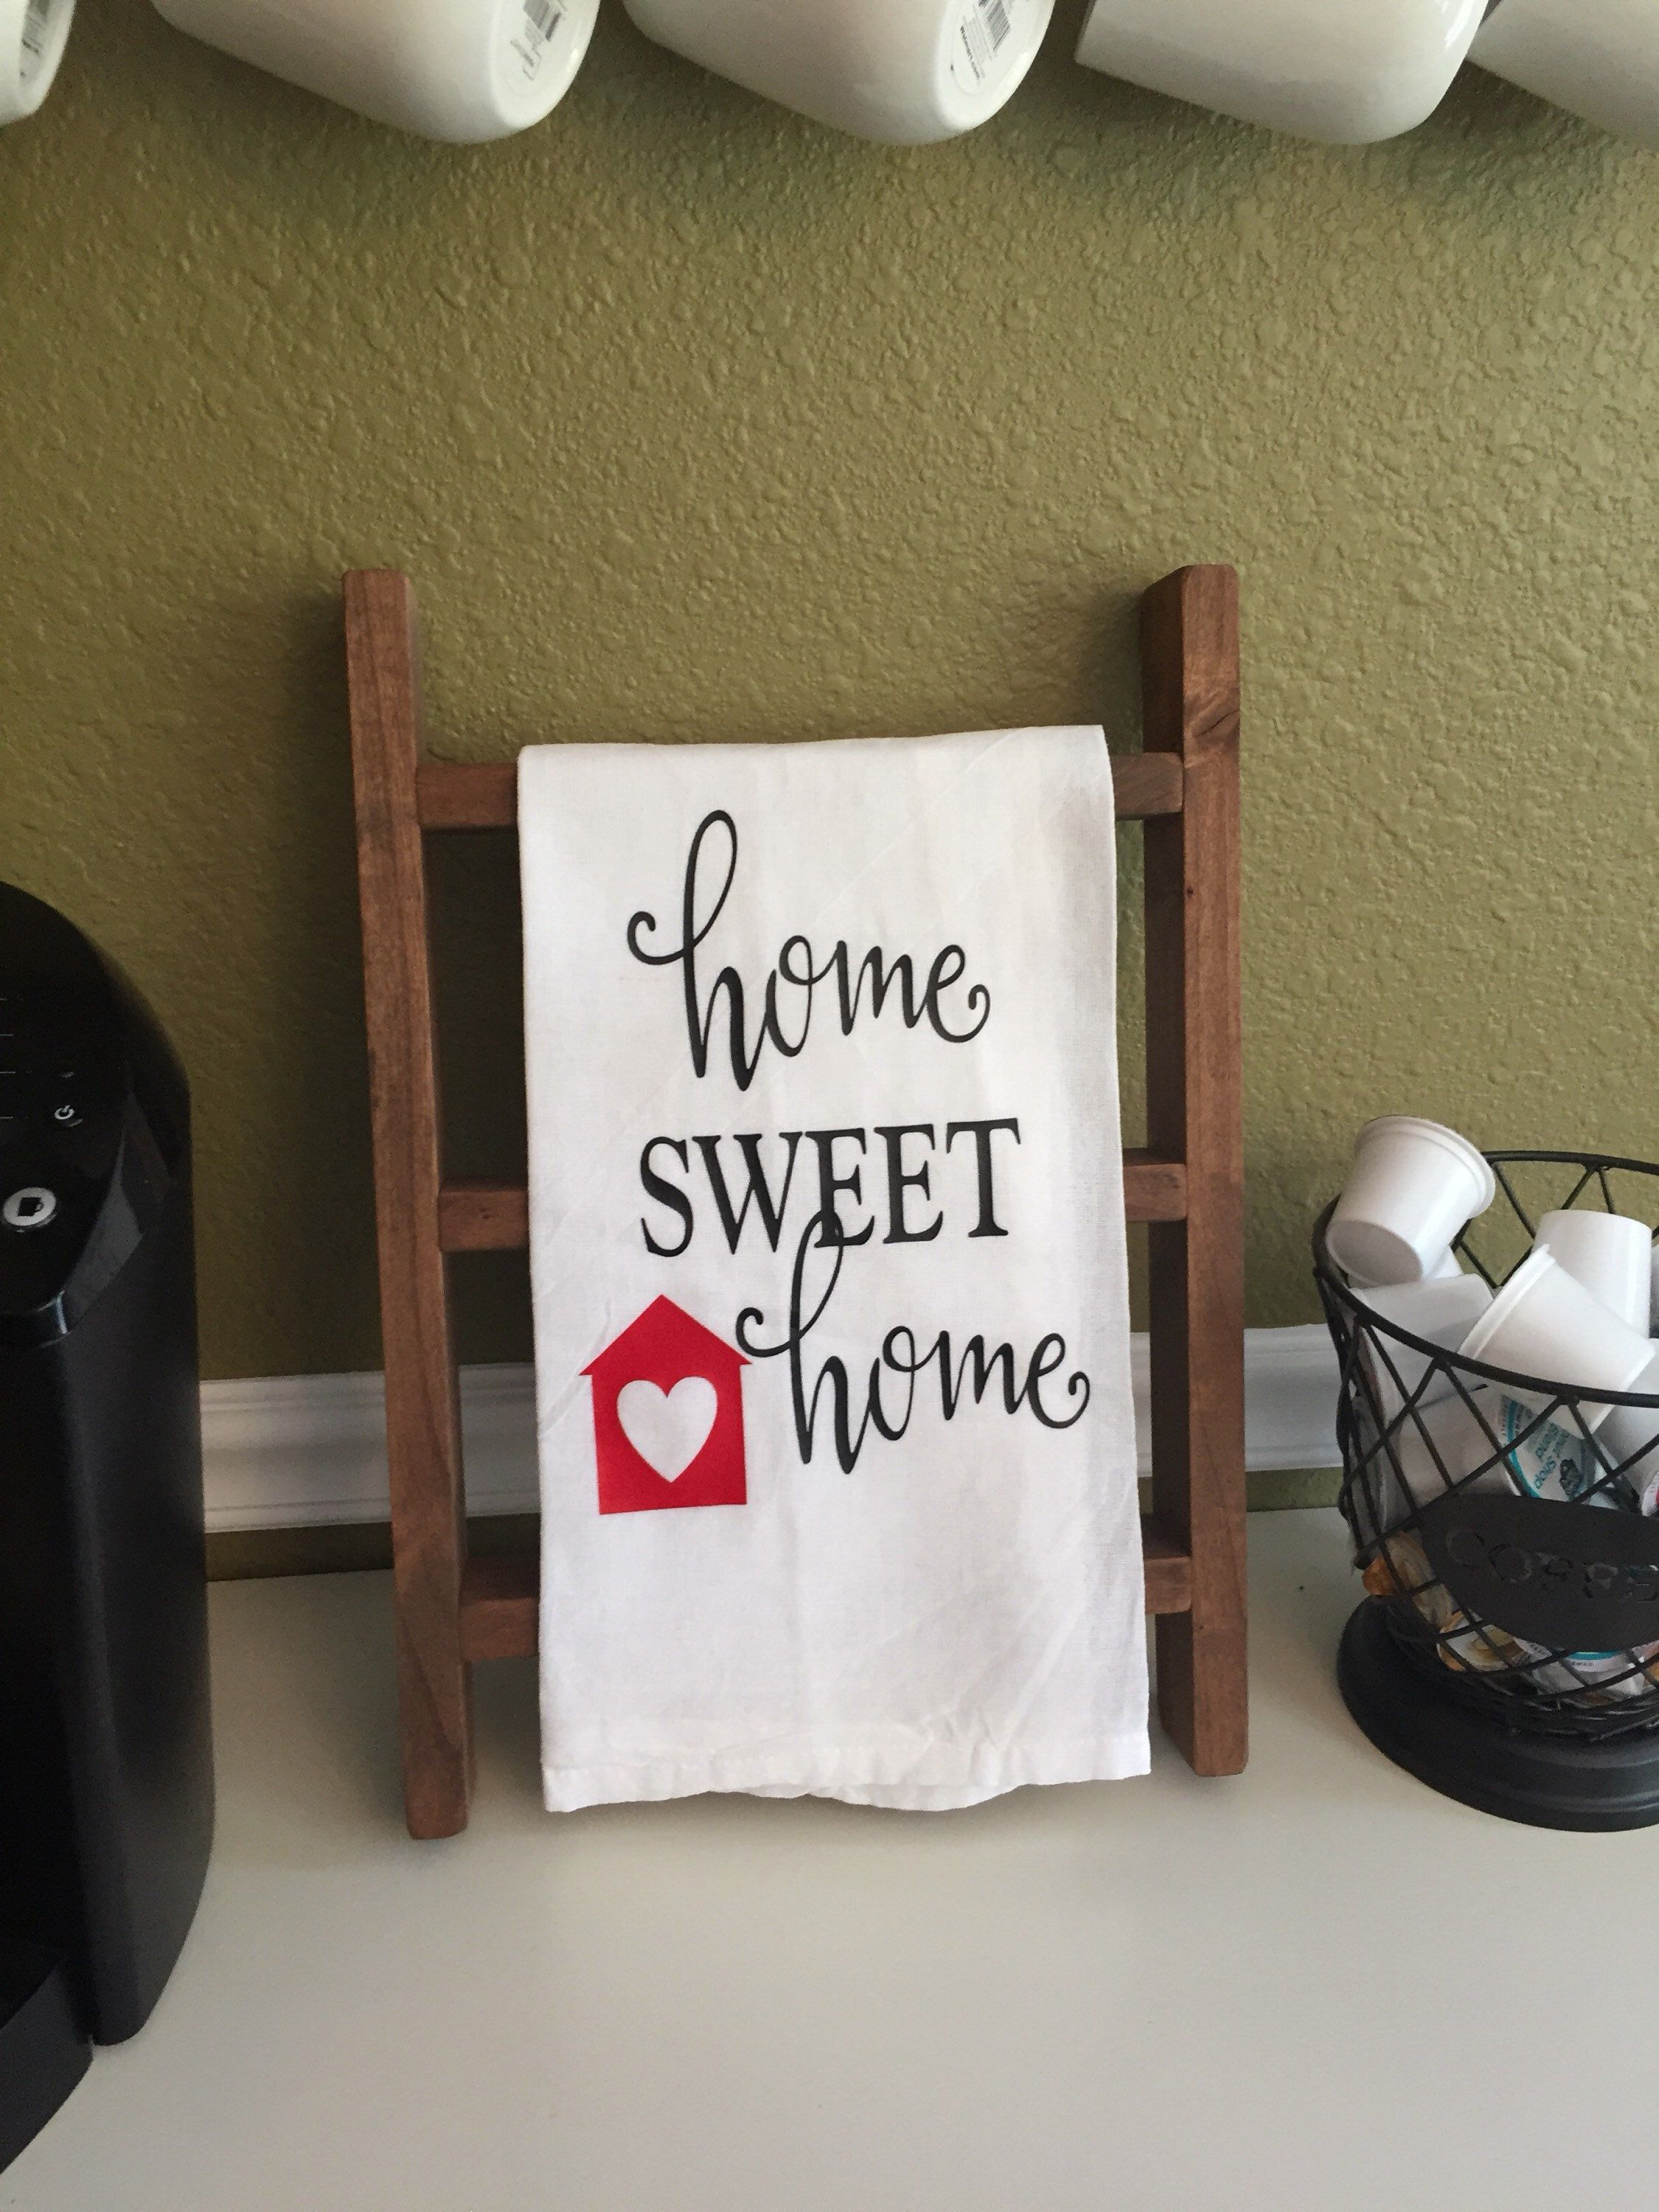 Pin by be bangled on farmhouse decor pinterest towel holders